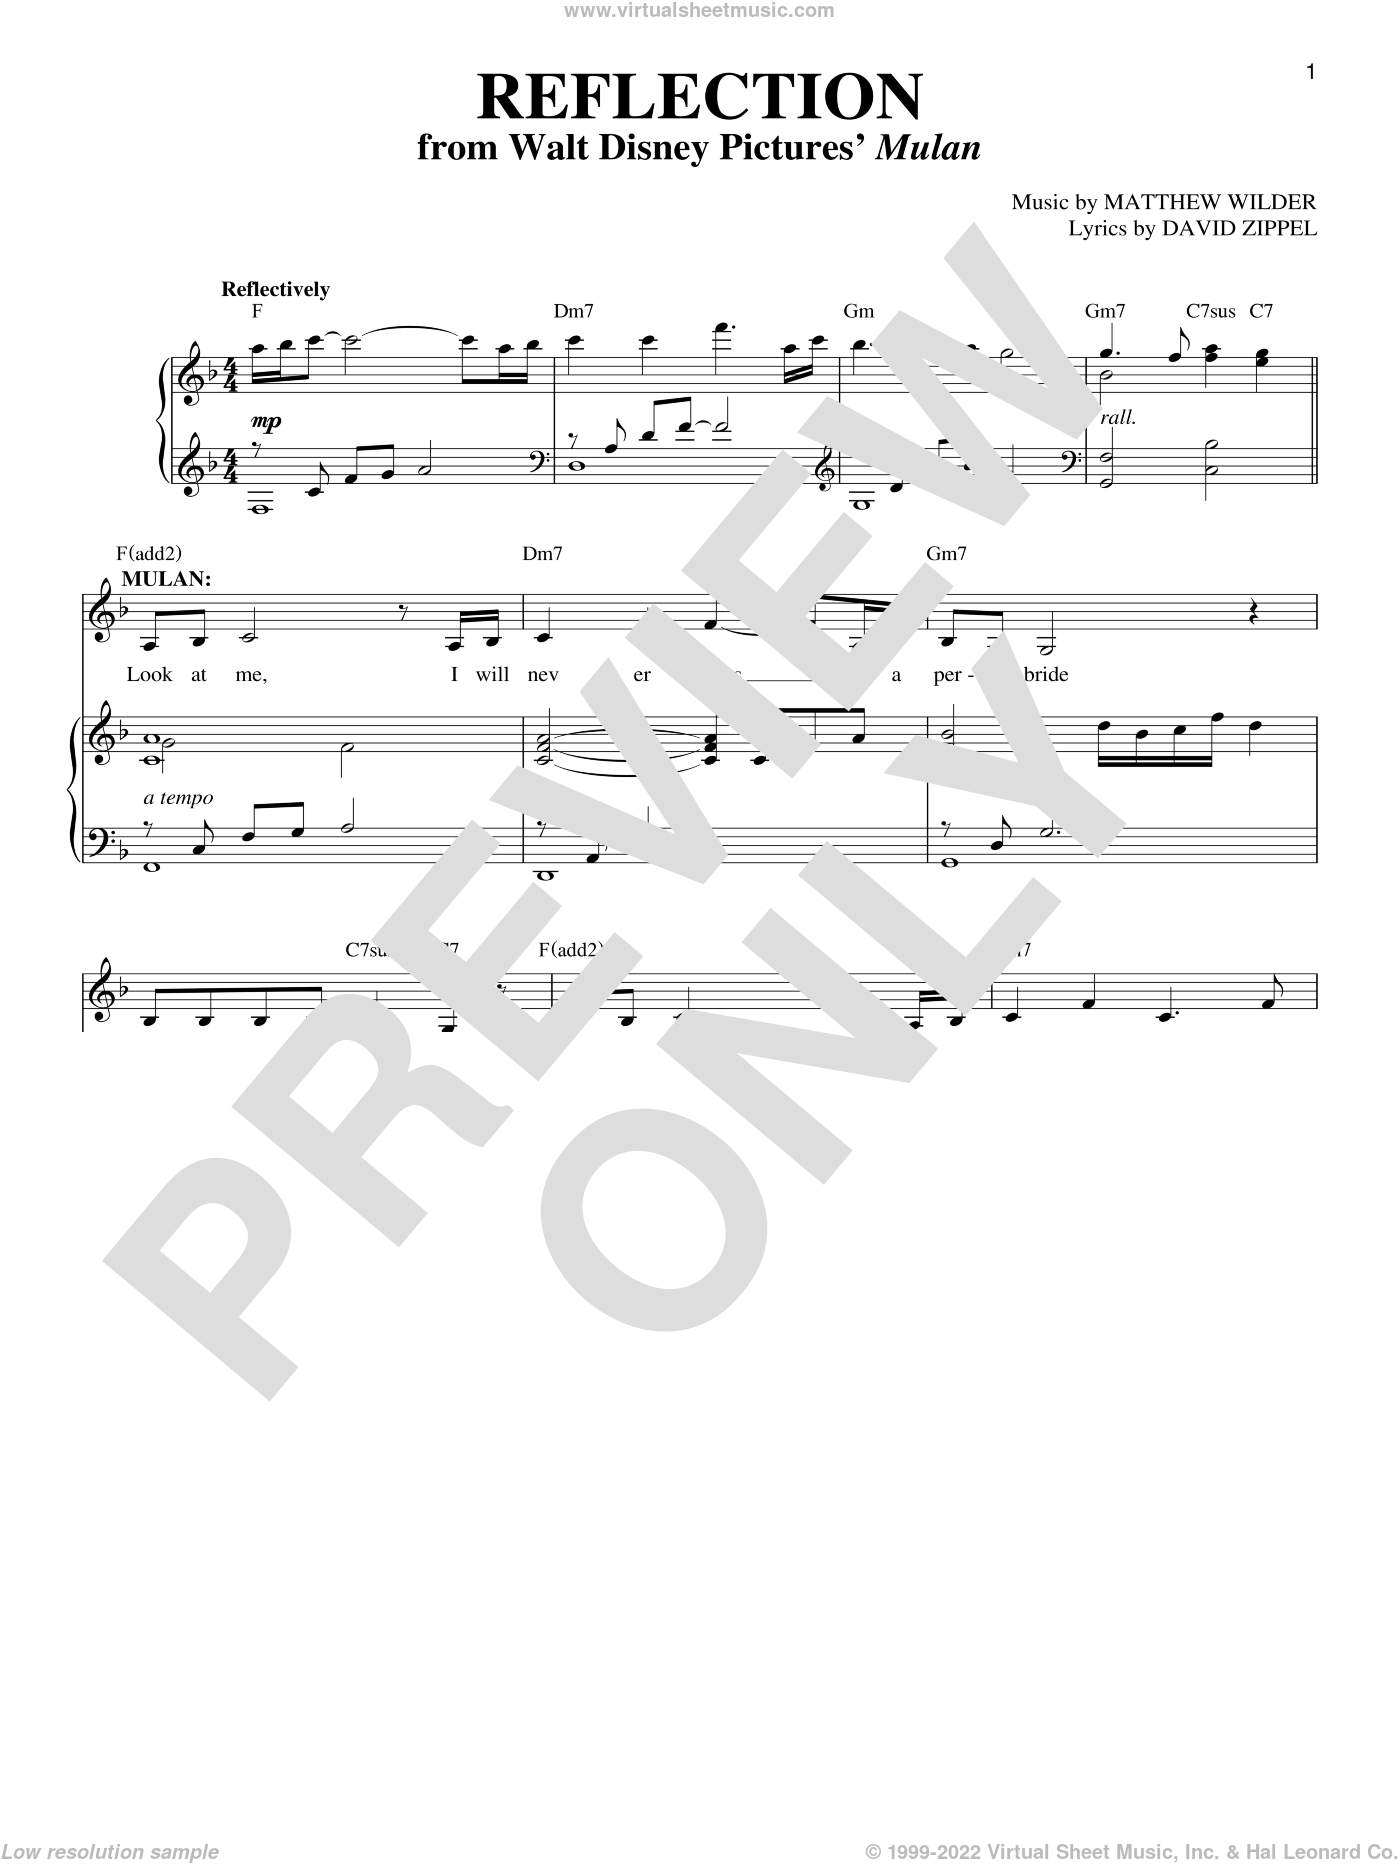 Zippel - Reflection sheet music for voice, piano or guitar [PDF]